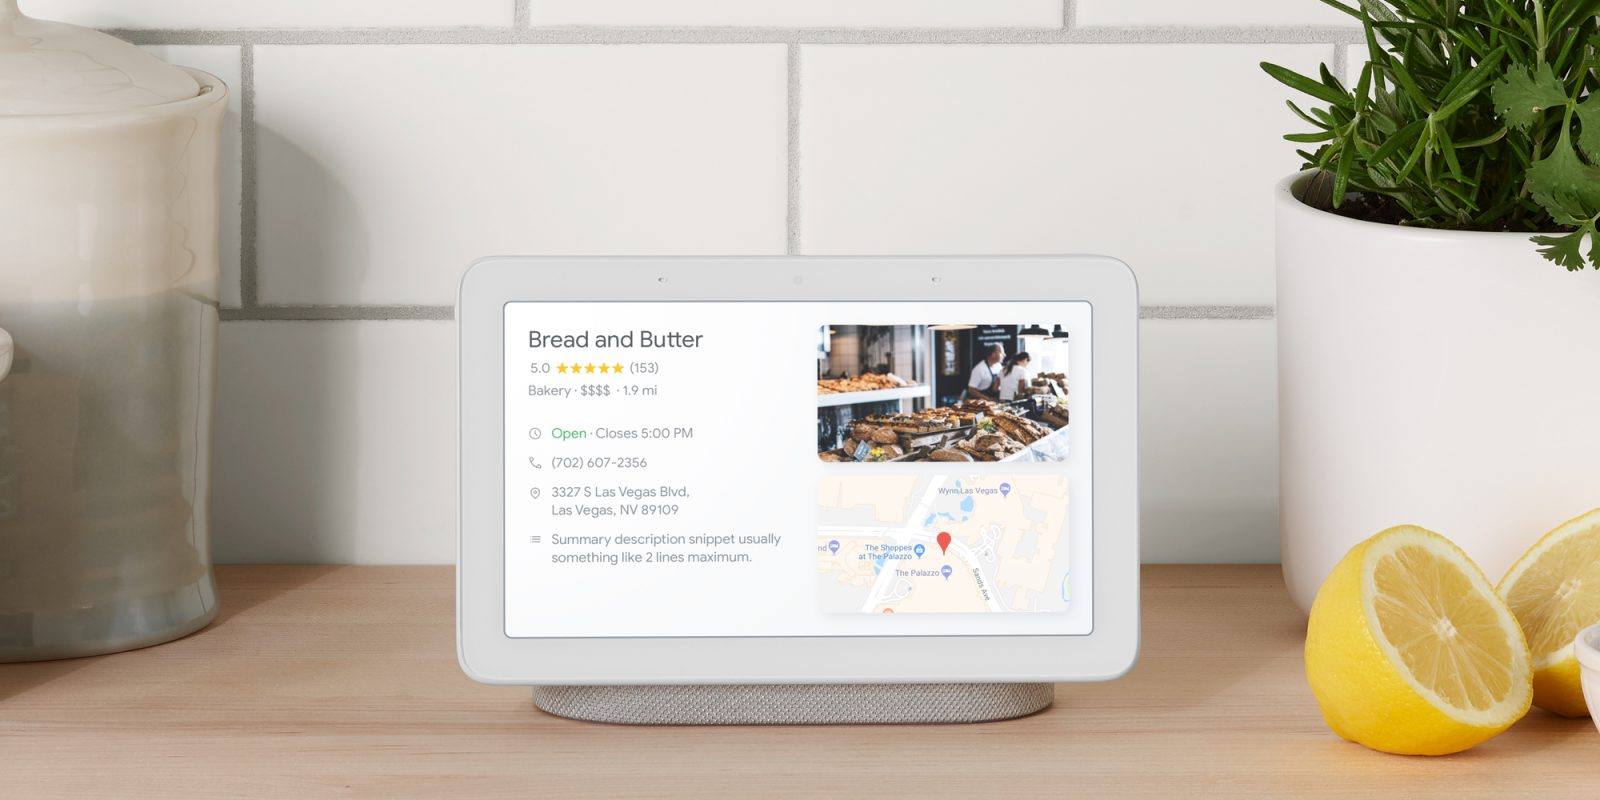 Keep tabs on your security cameras and much more w/ Google's